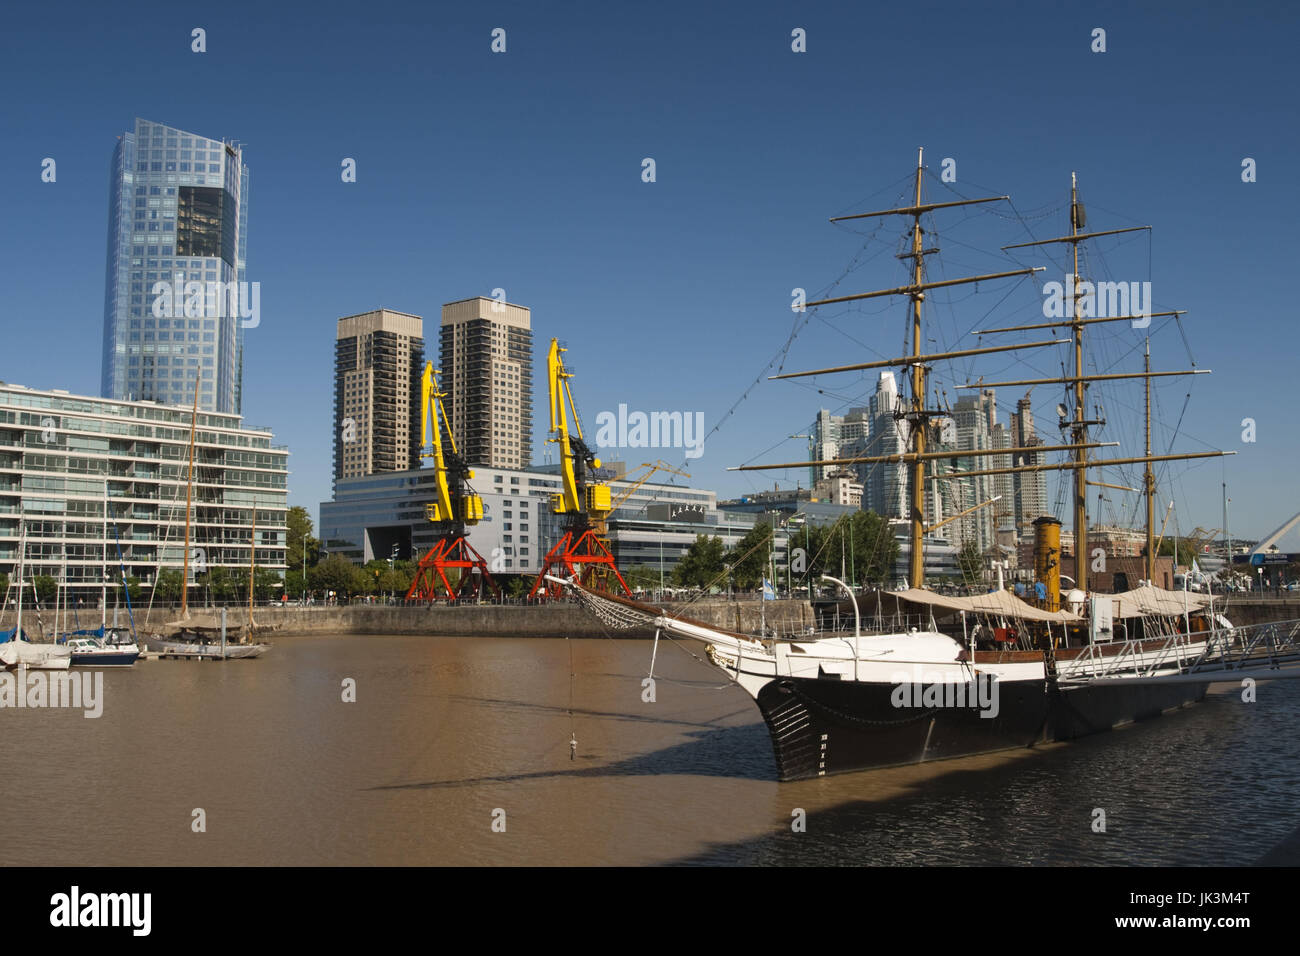 Argentina, Buenos Aires, Puerto Madero, Corbeta Uruguay, tall ship that visited Antartica in 1903 Stock Photo